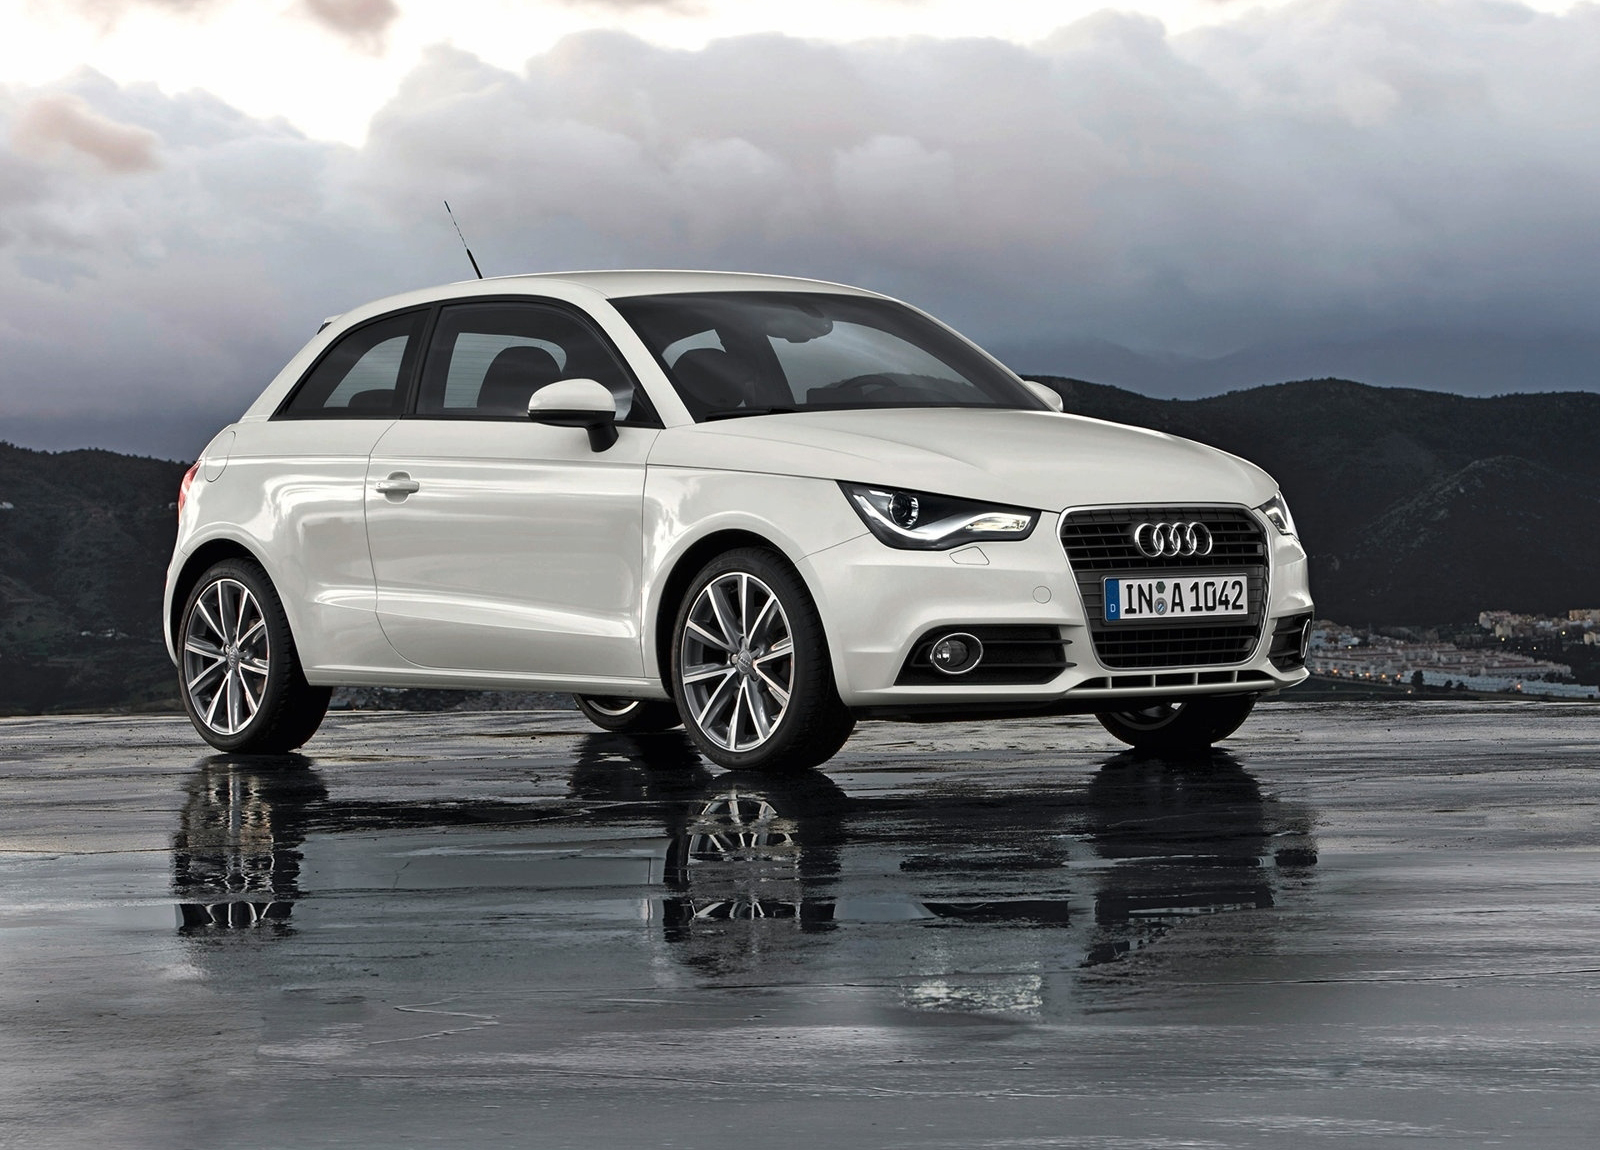 audi a1 hd wallpapers the world of audi. Black Bedroom Furniture Sets. Home Design Ideas